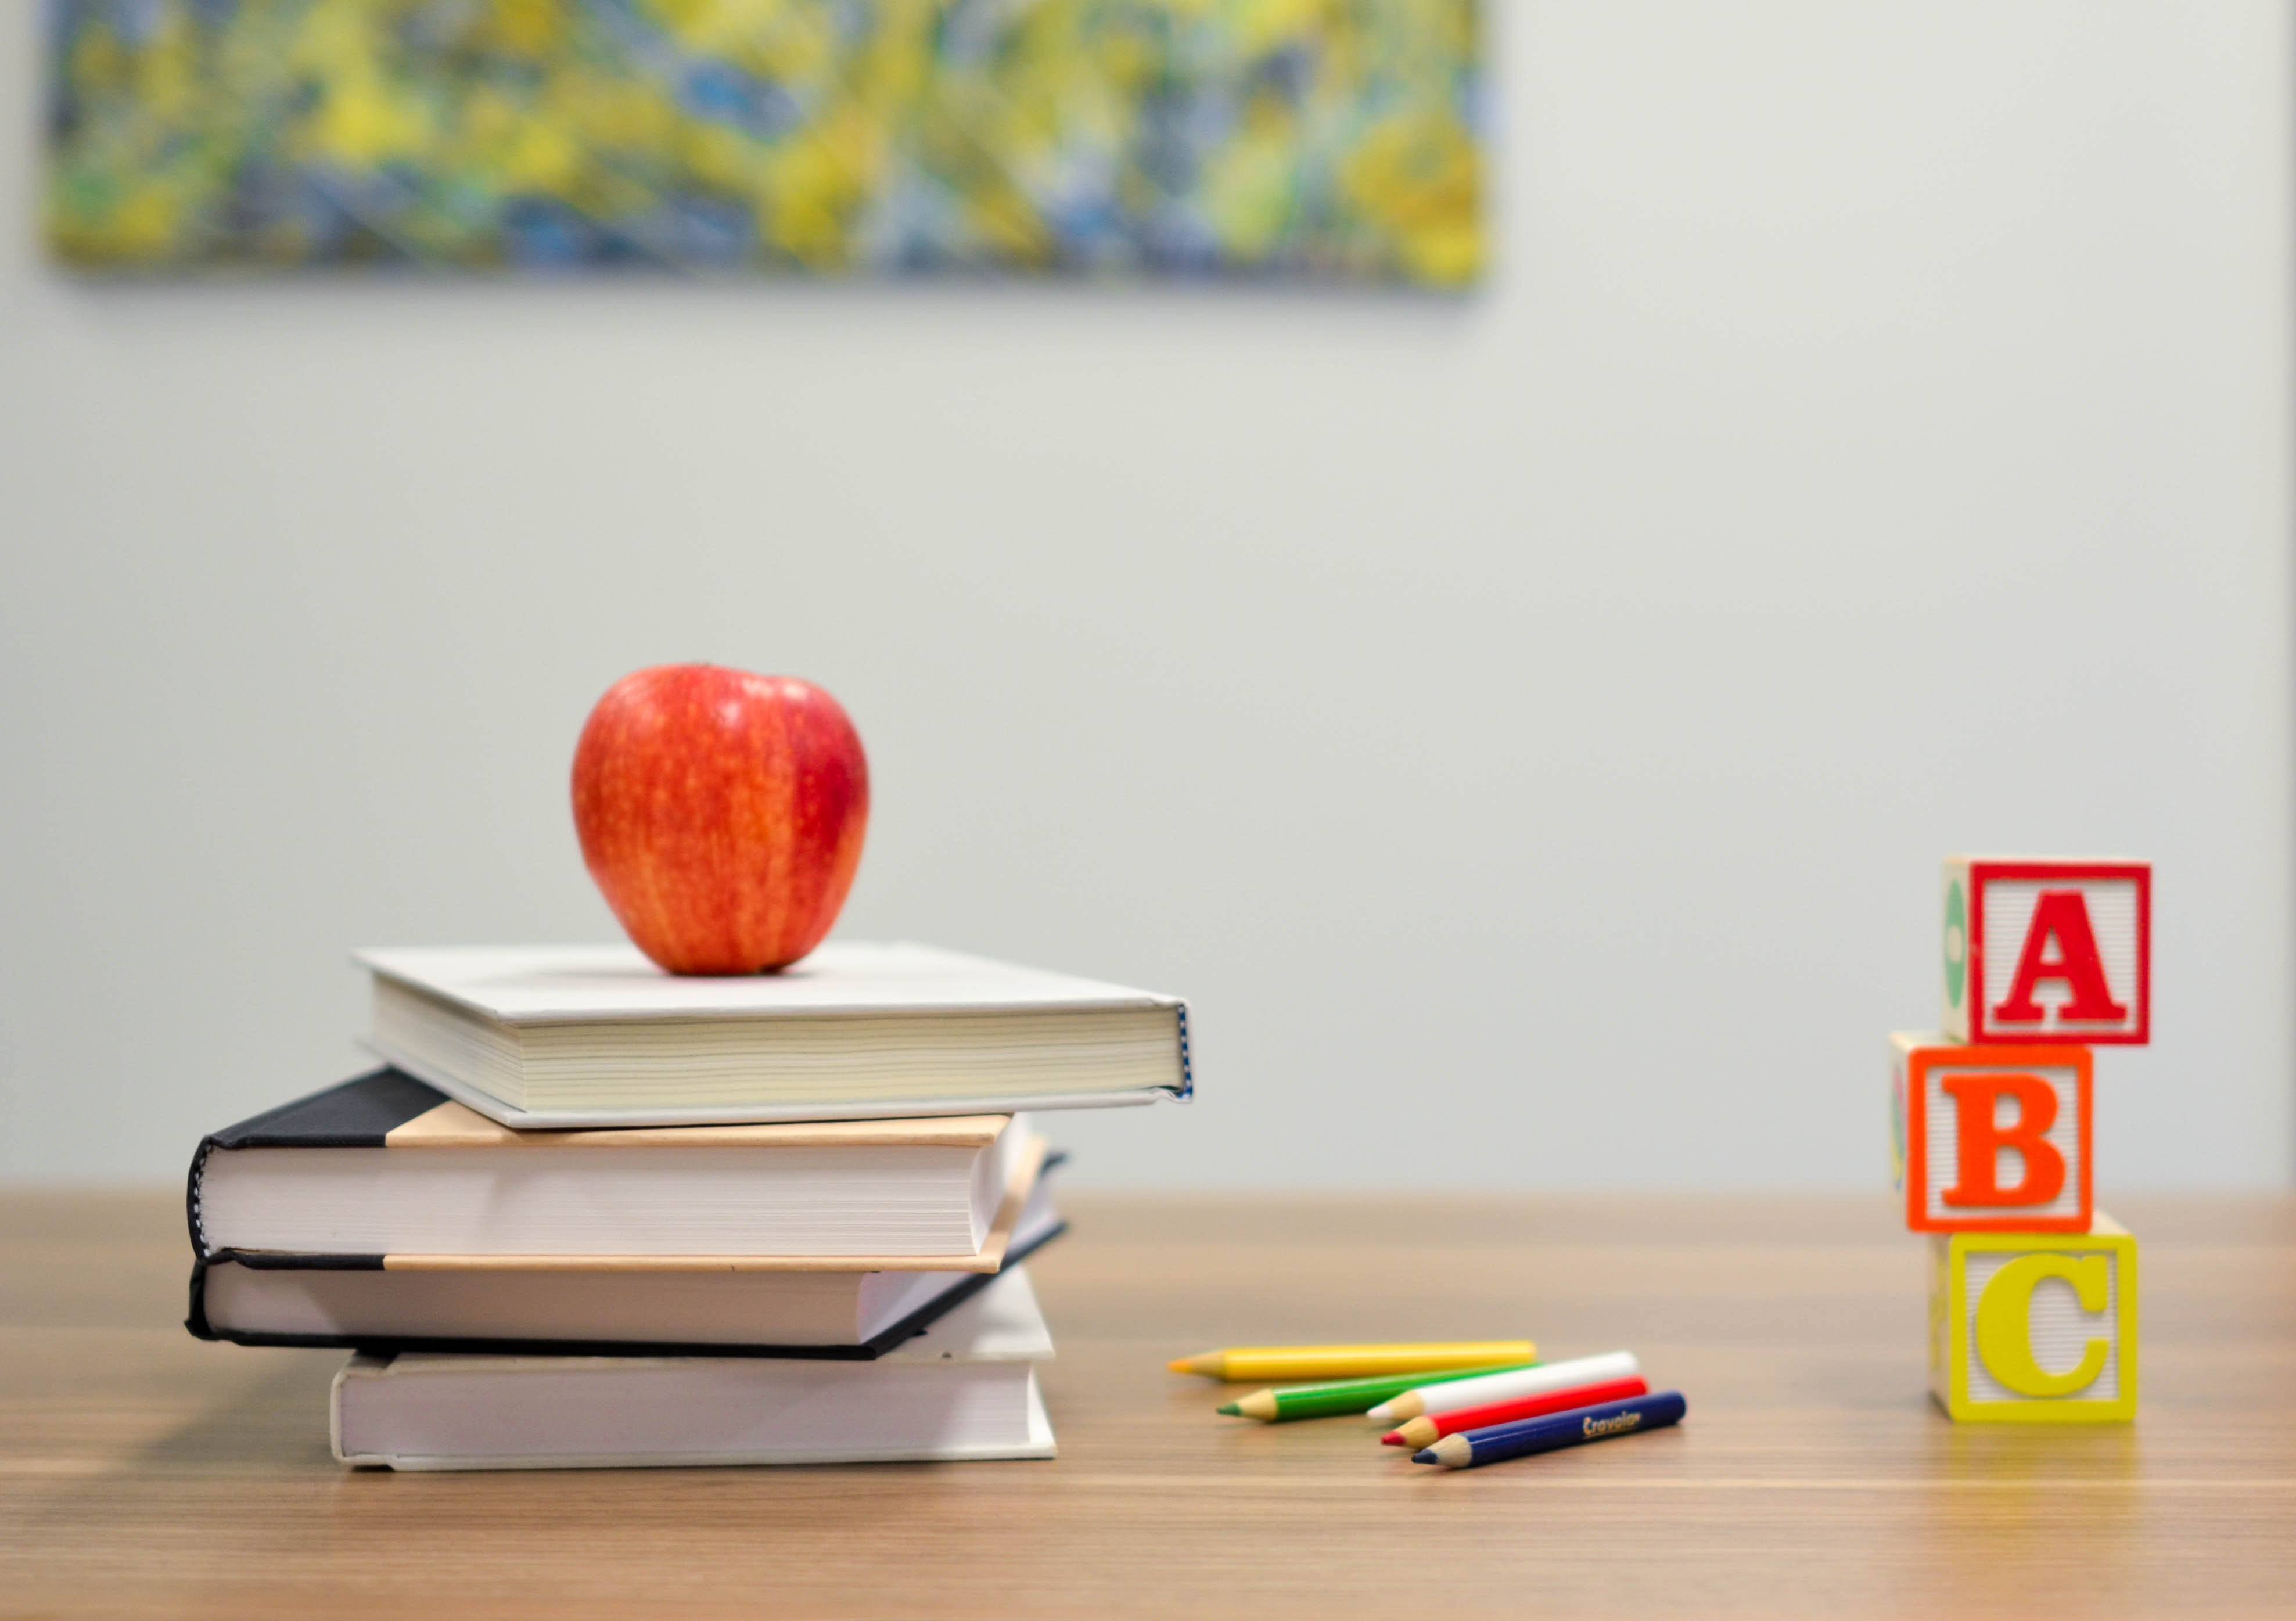 An apple on top of a stack of books rests on a desk with colored pencils and blocks. Courtesy of Element5 Digital on Unsplash.